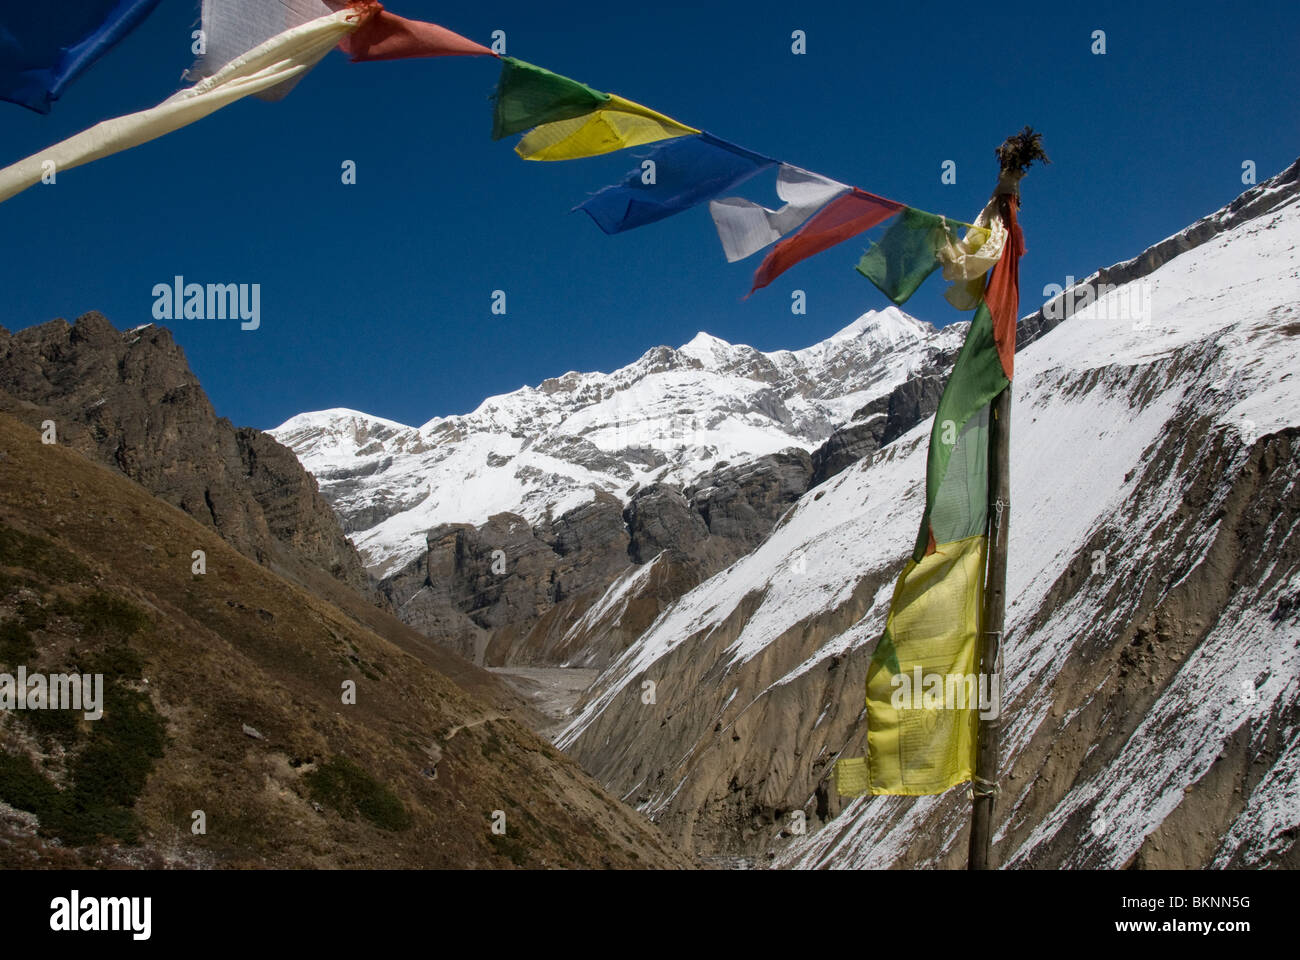 Prayer Flags and snow clad mountains, Thorung Phedi, Annapurna Circuit, Nepal - Stock Image